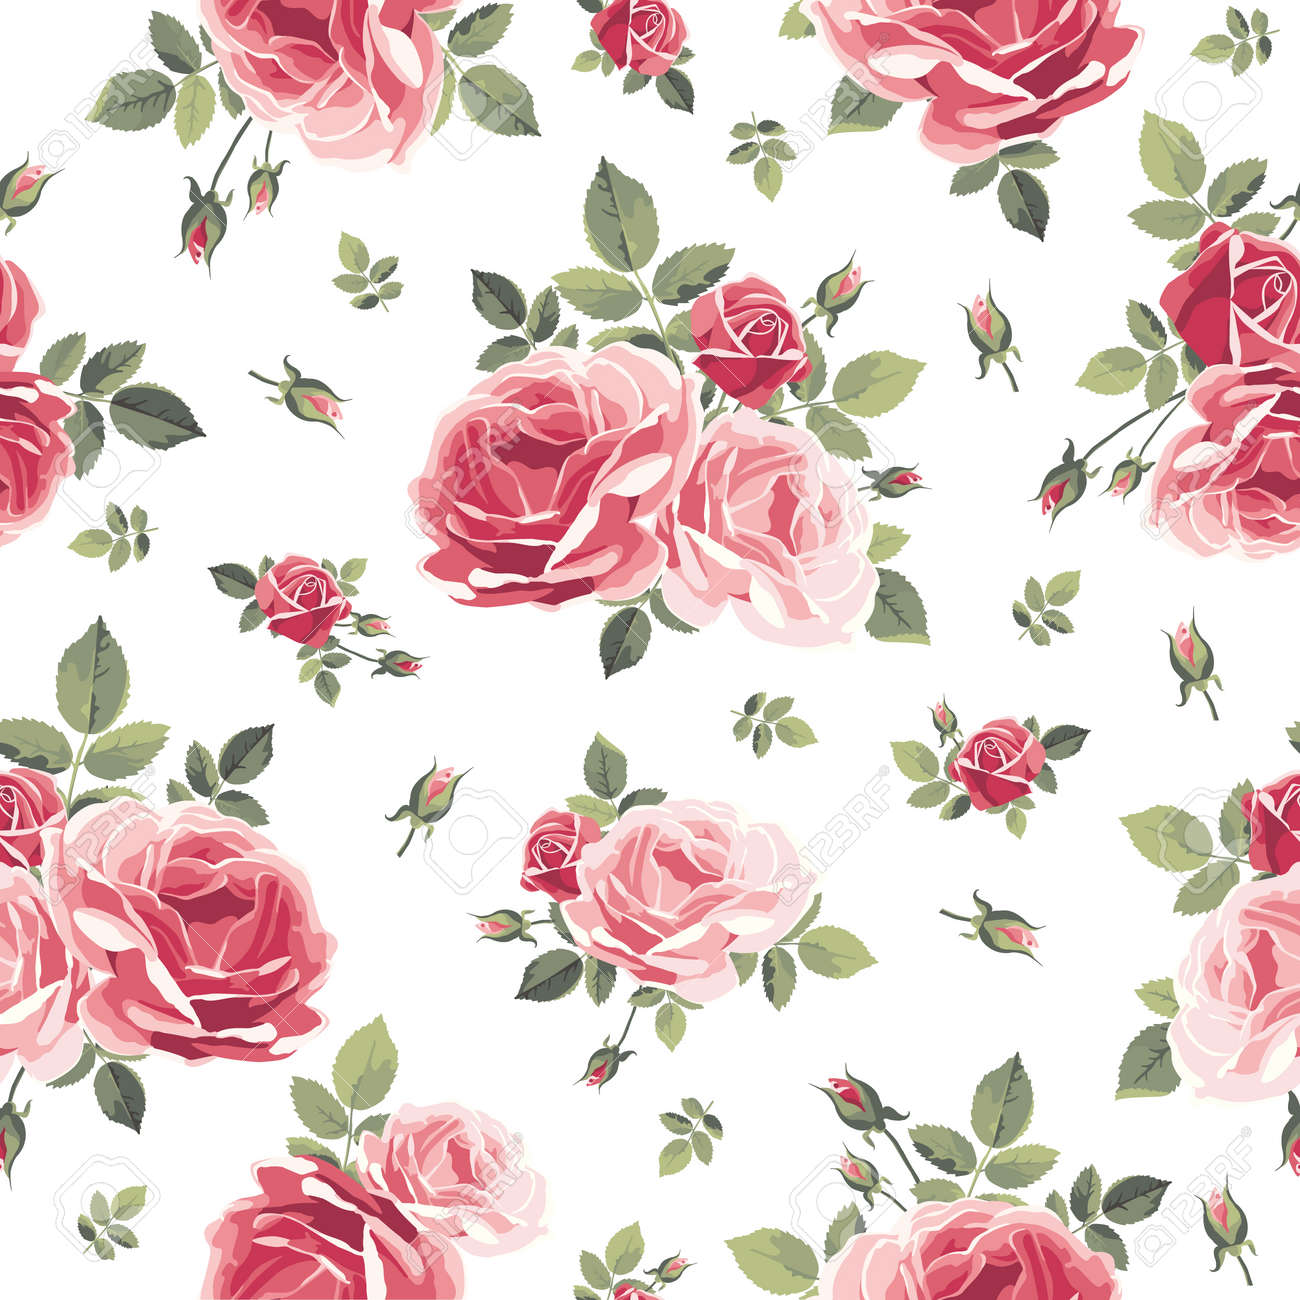 Pattern With Roses Vintage Floral Illustration Royalty Free